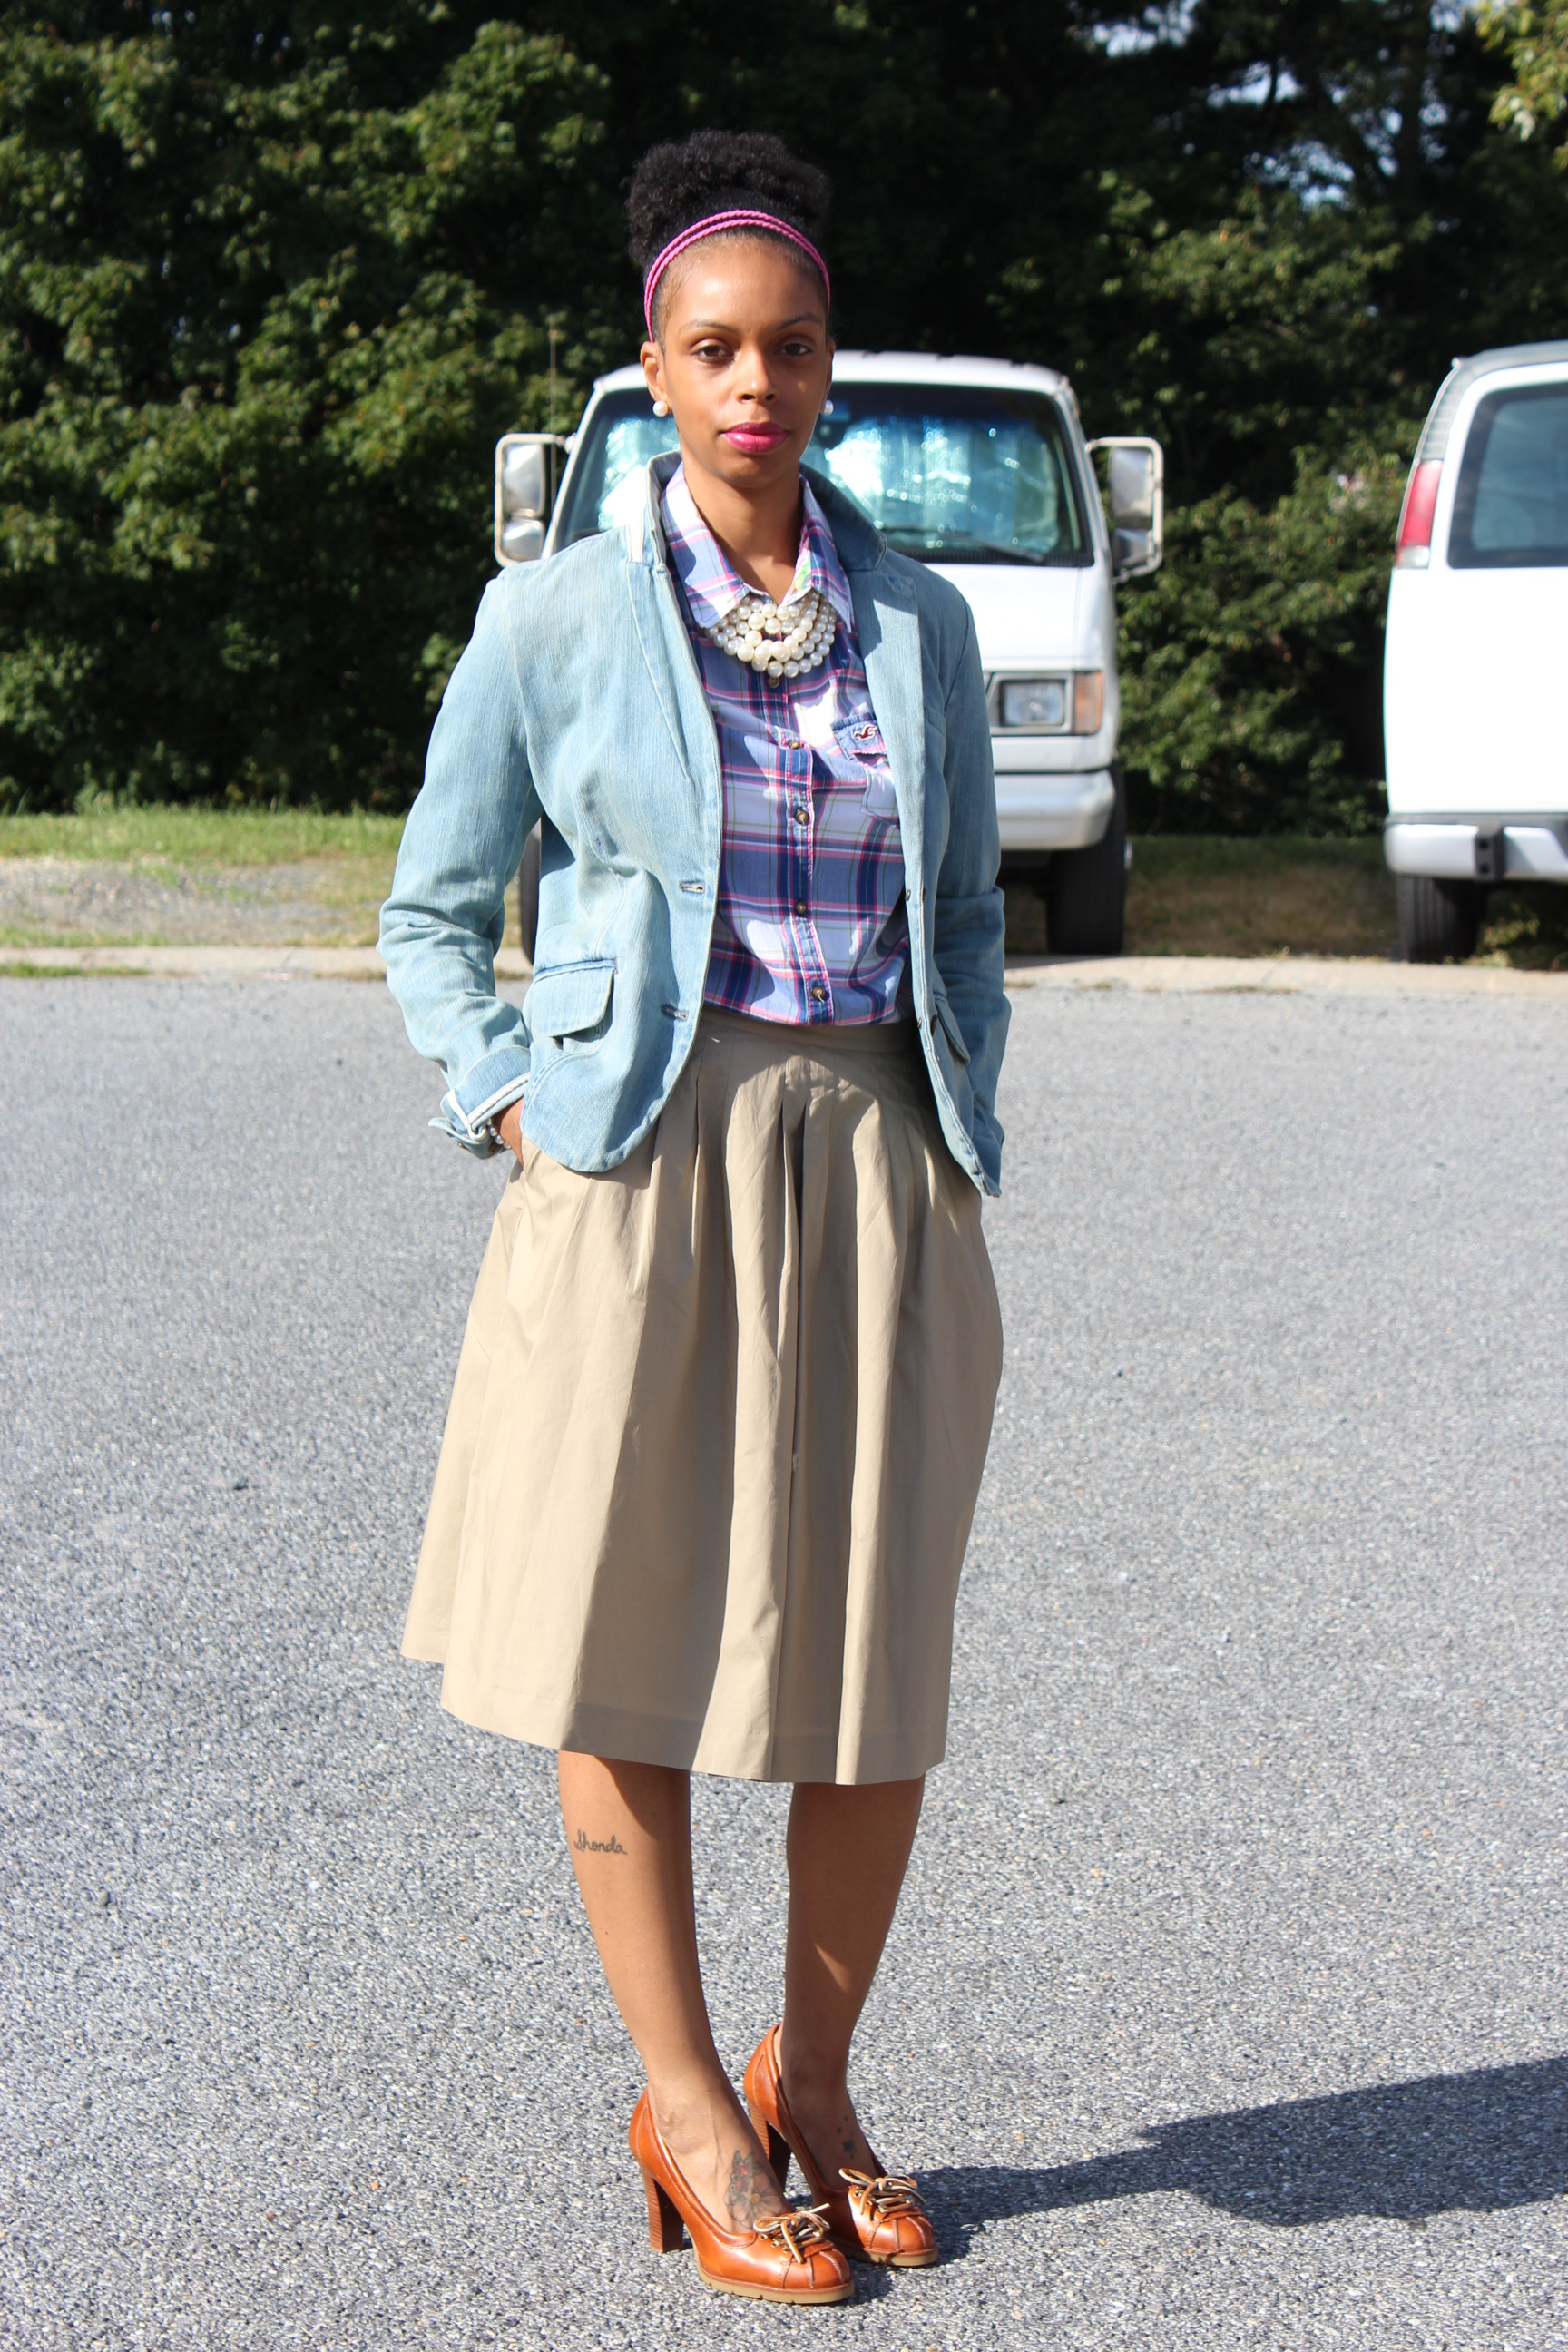 preppy girl  1st state style